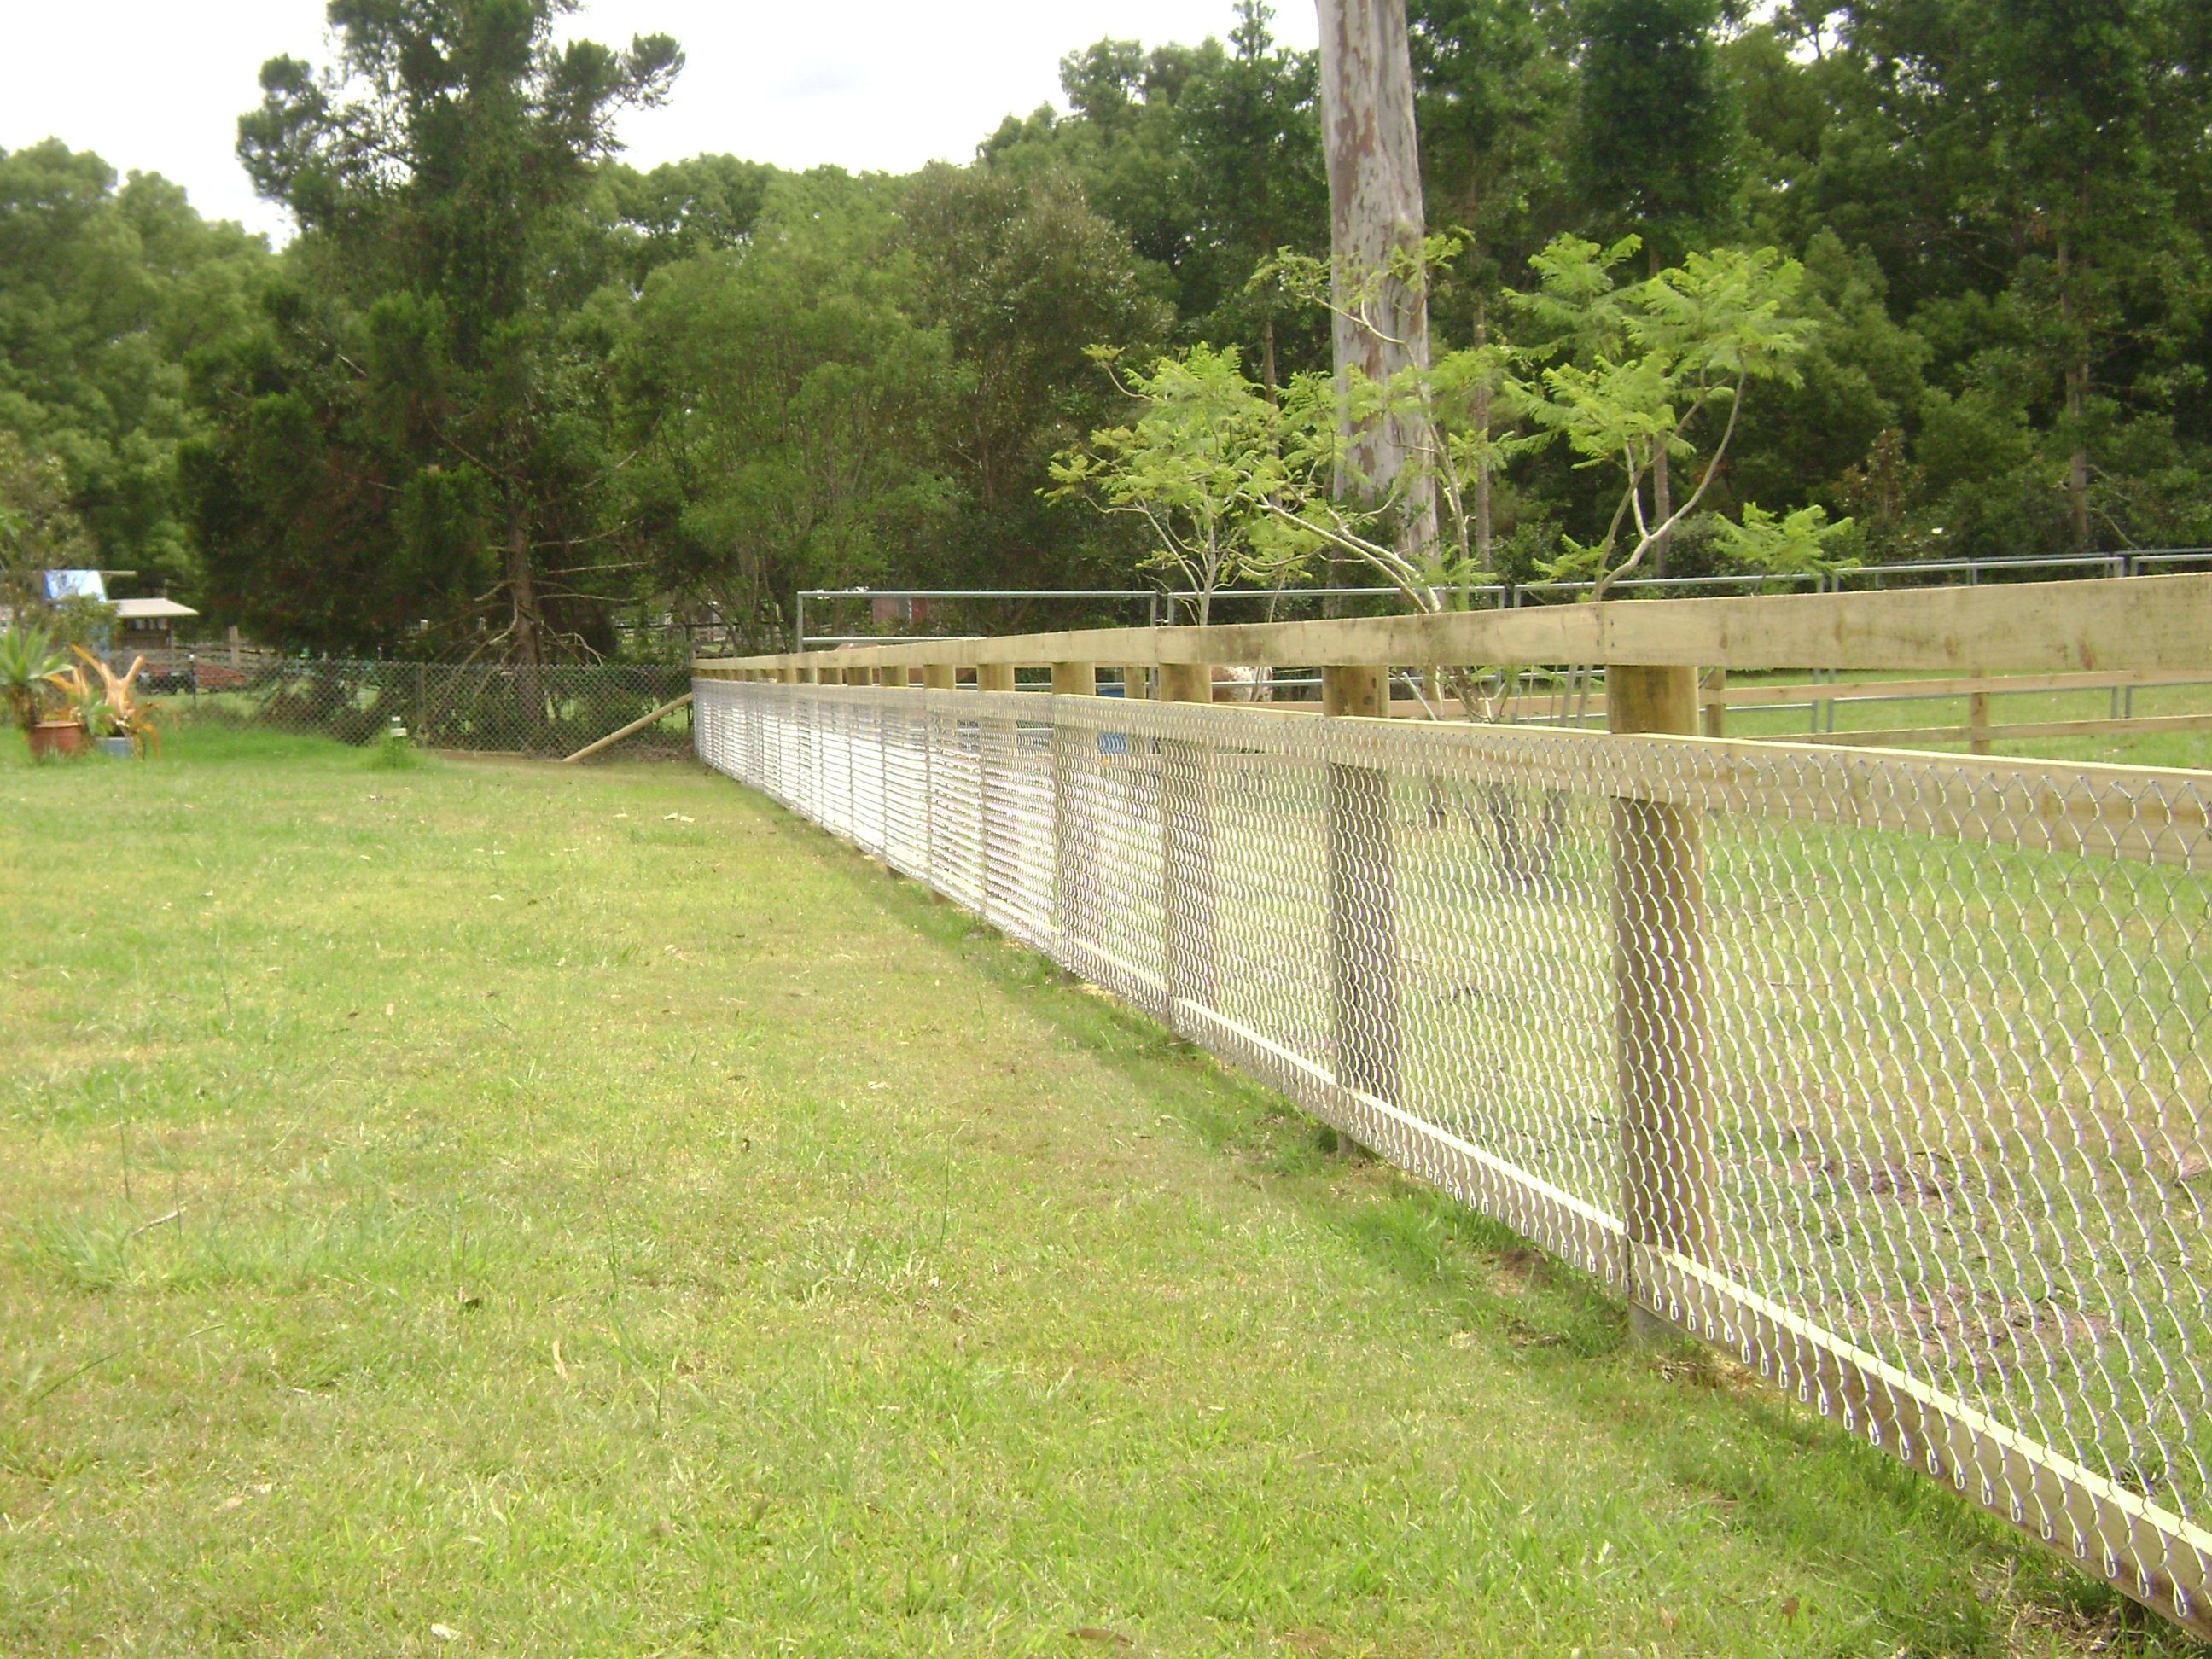 Pin by Lisa Anne on Fence | Pinterest | Timber posts, Fences and ...